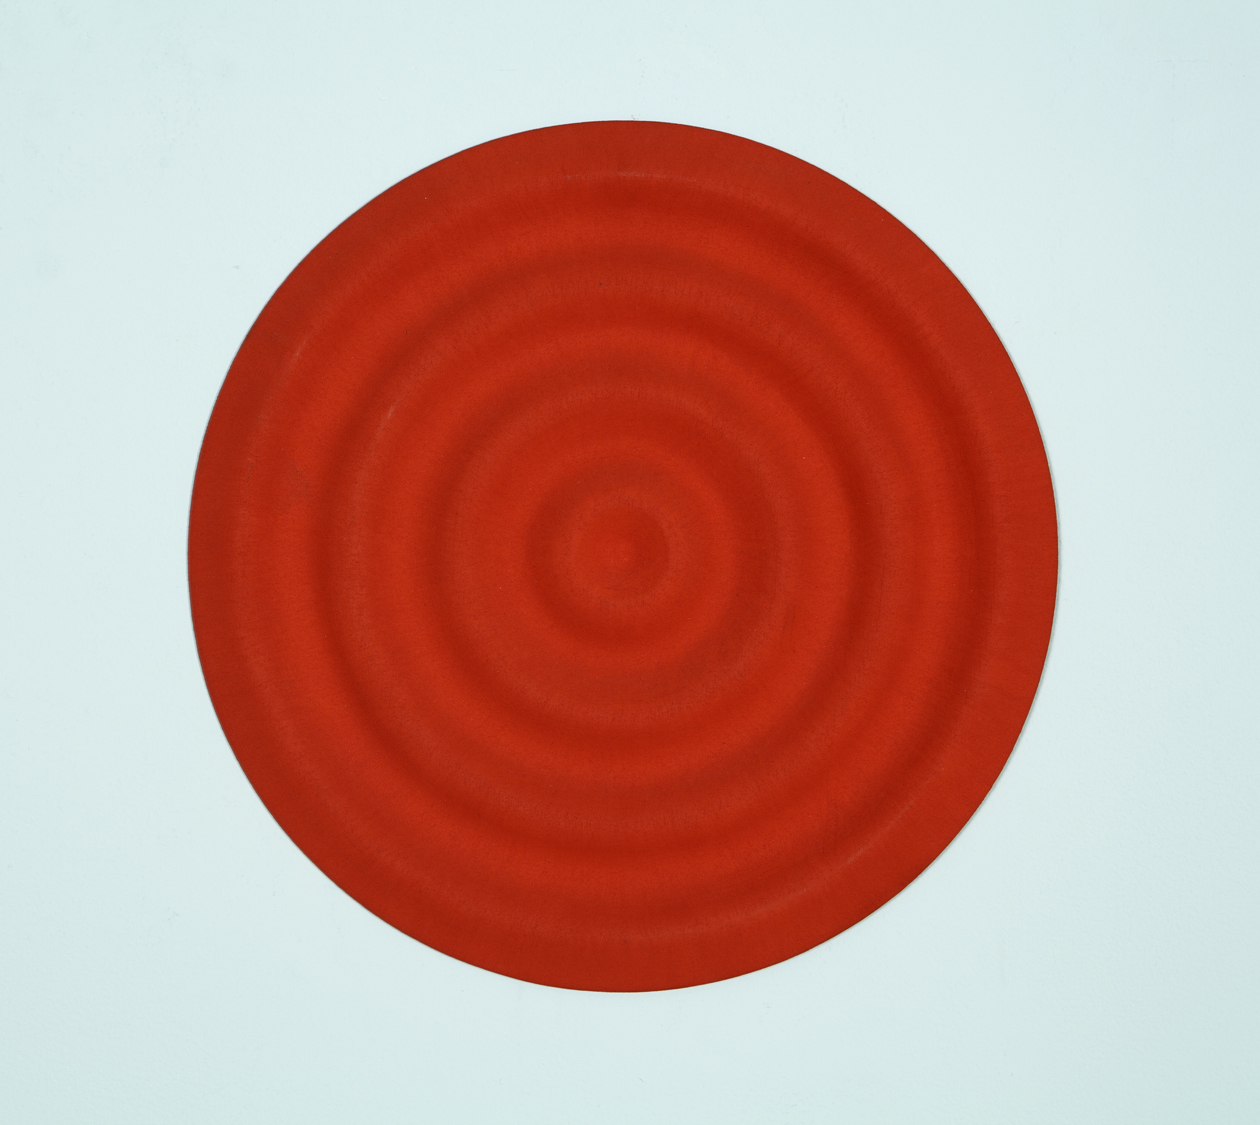 Copy of Rupert Deese, Four Wavelets no.3, 1998 oil on wood 12 inch diameter